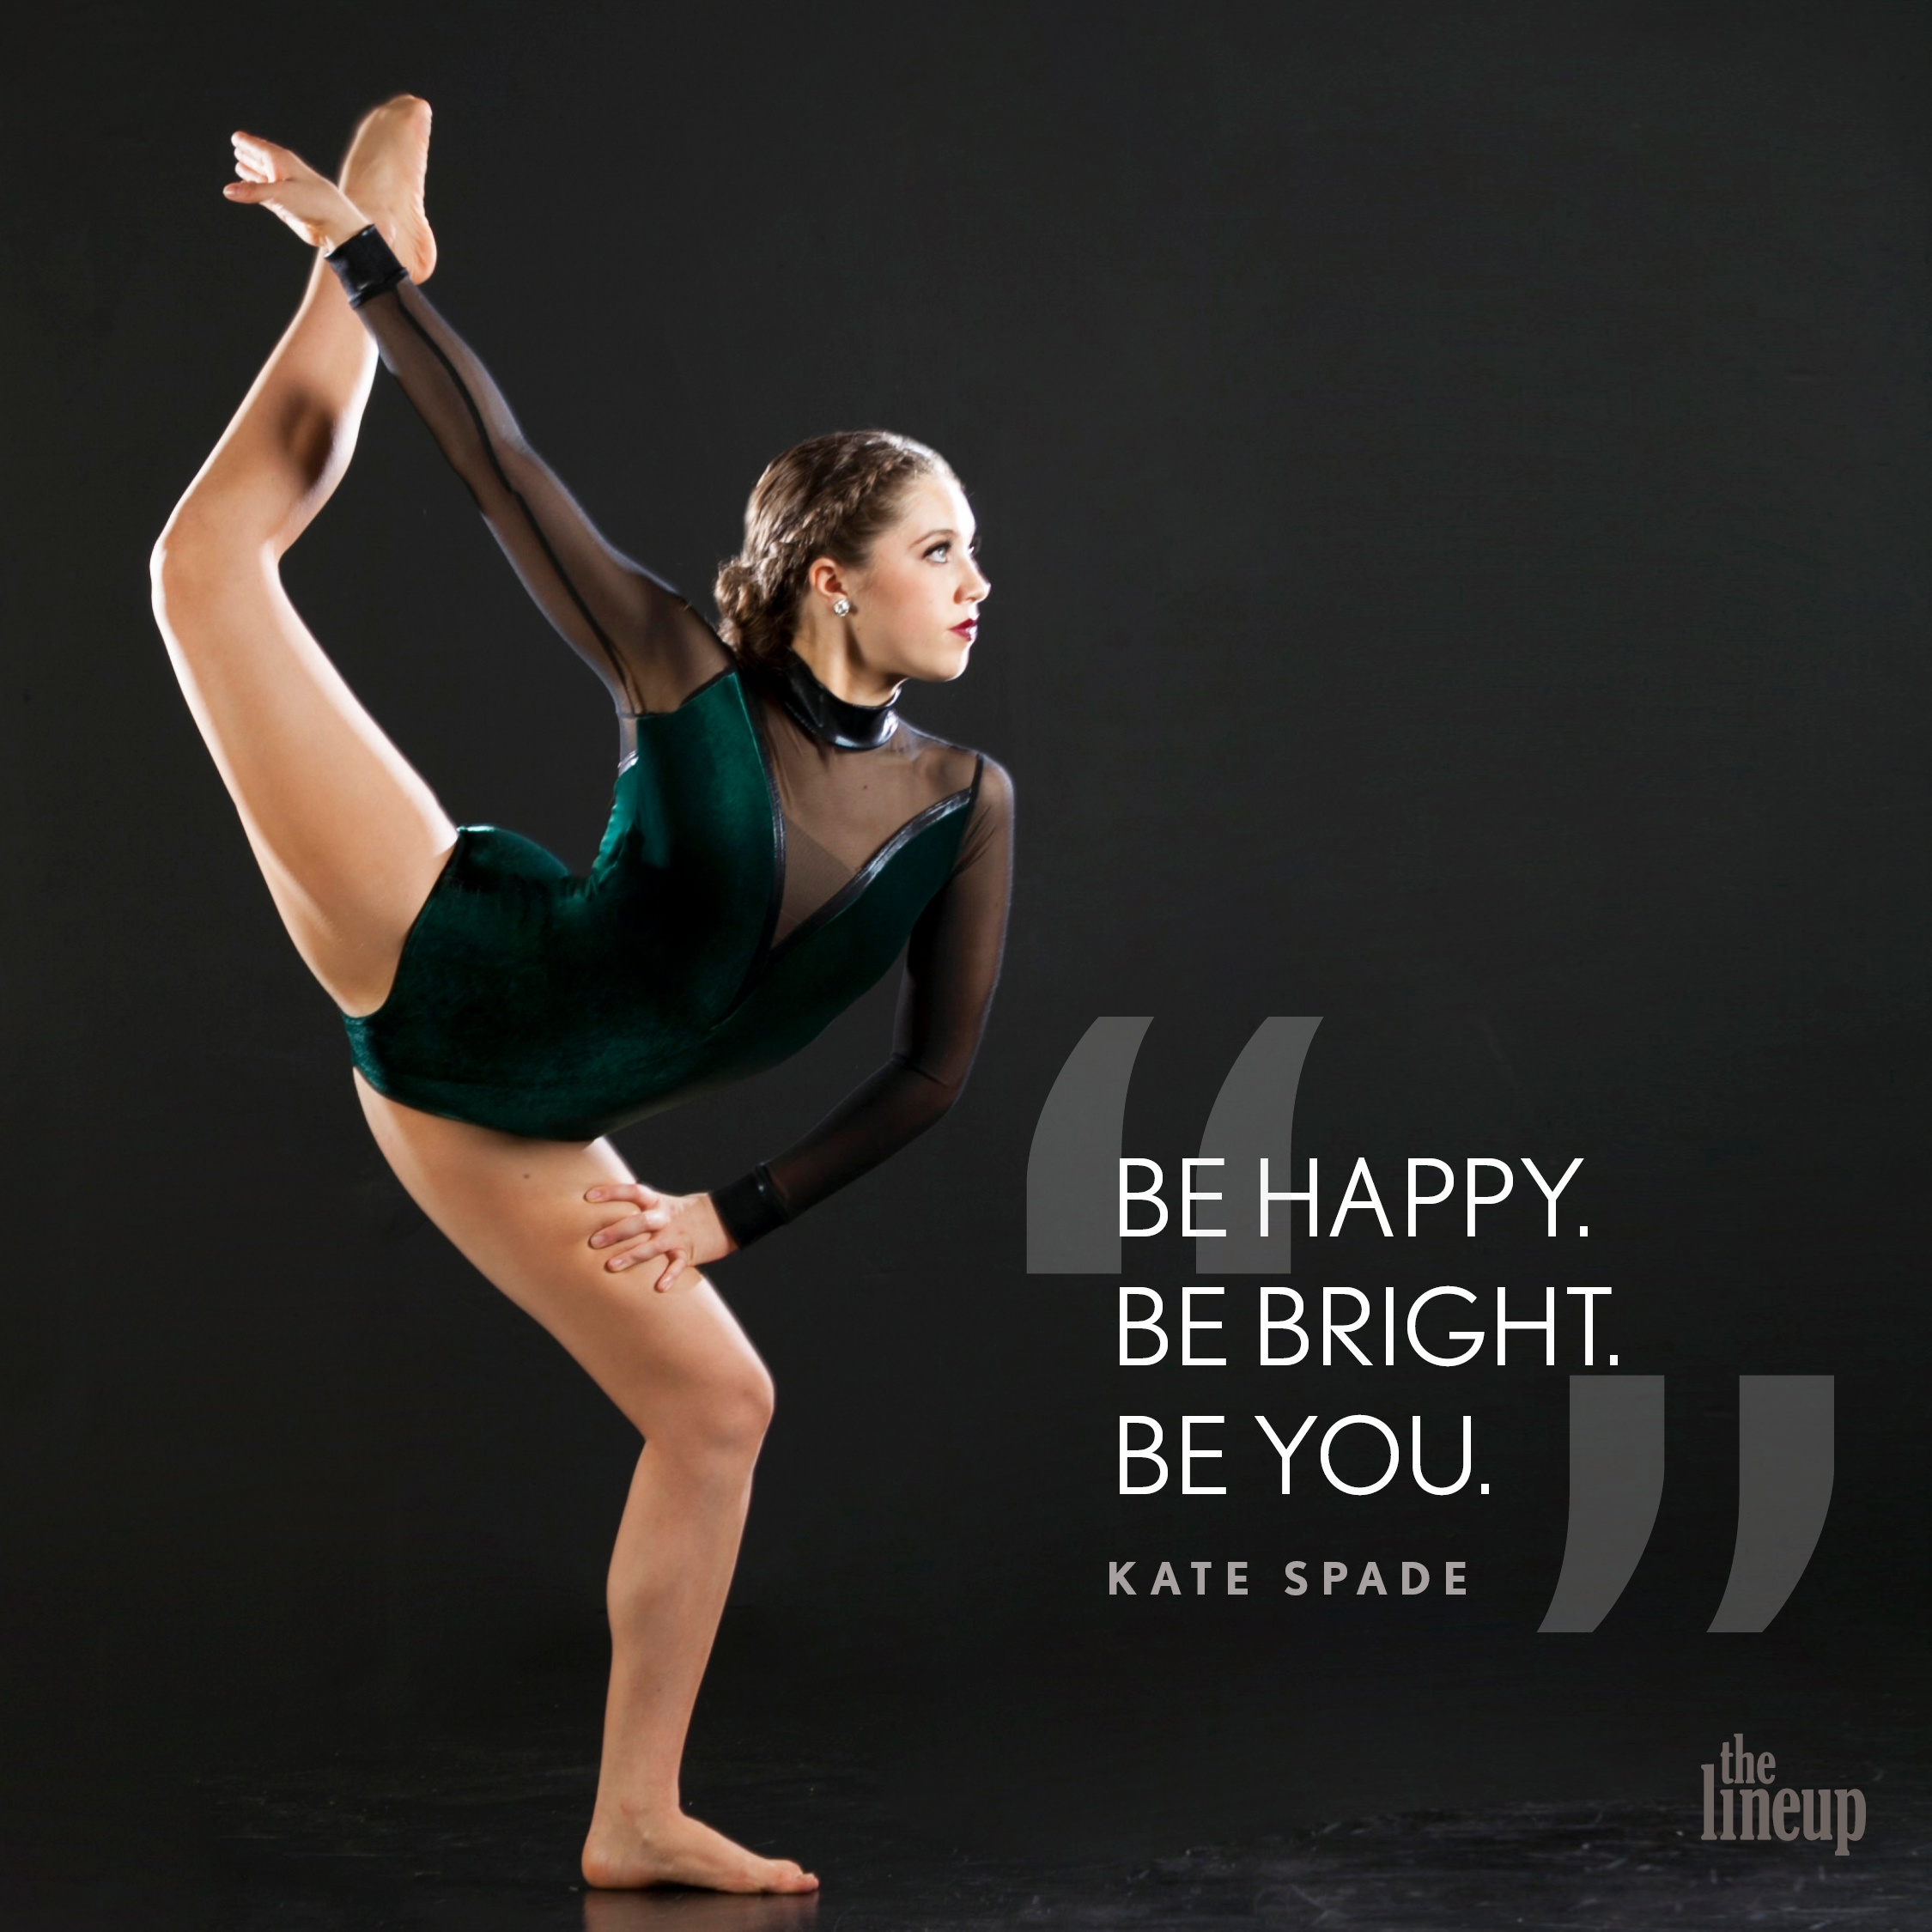 """Be Happy. Be Bright. Be You."" - Kate Spade Motivational Quotes for Dancers"